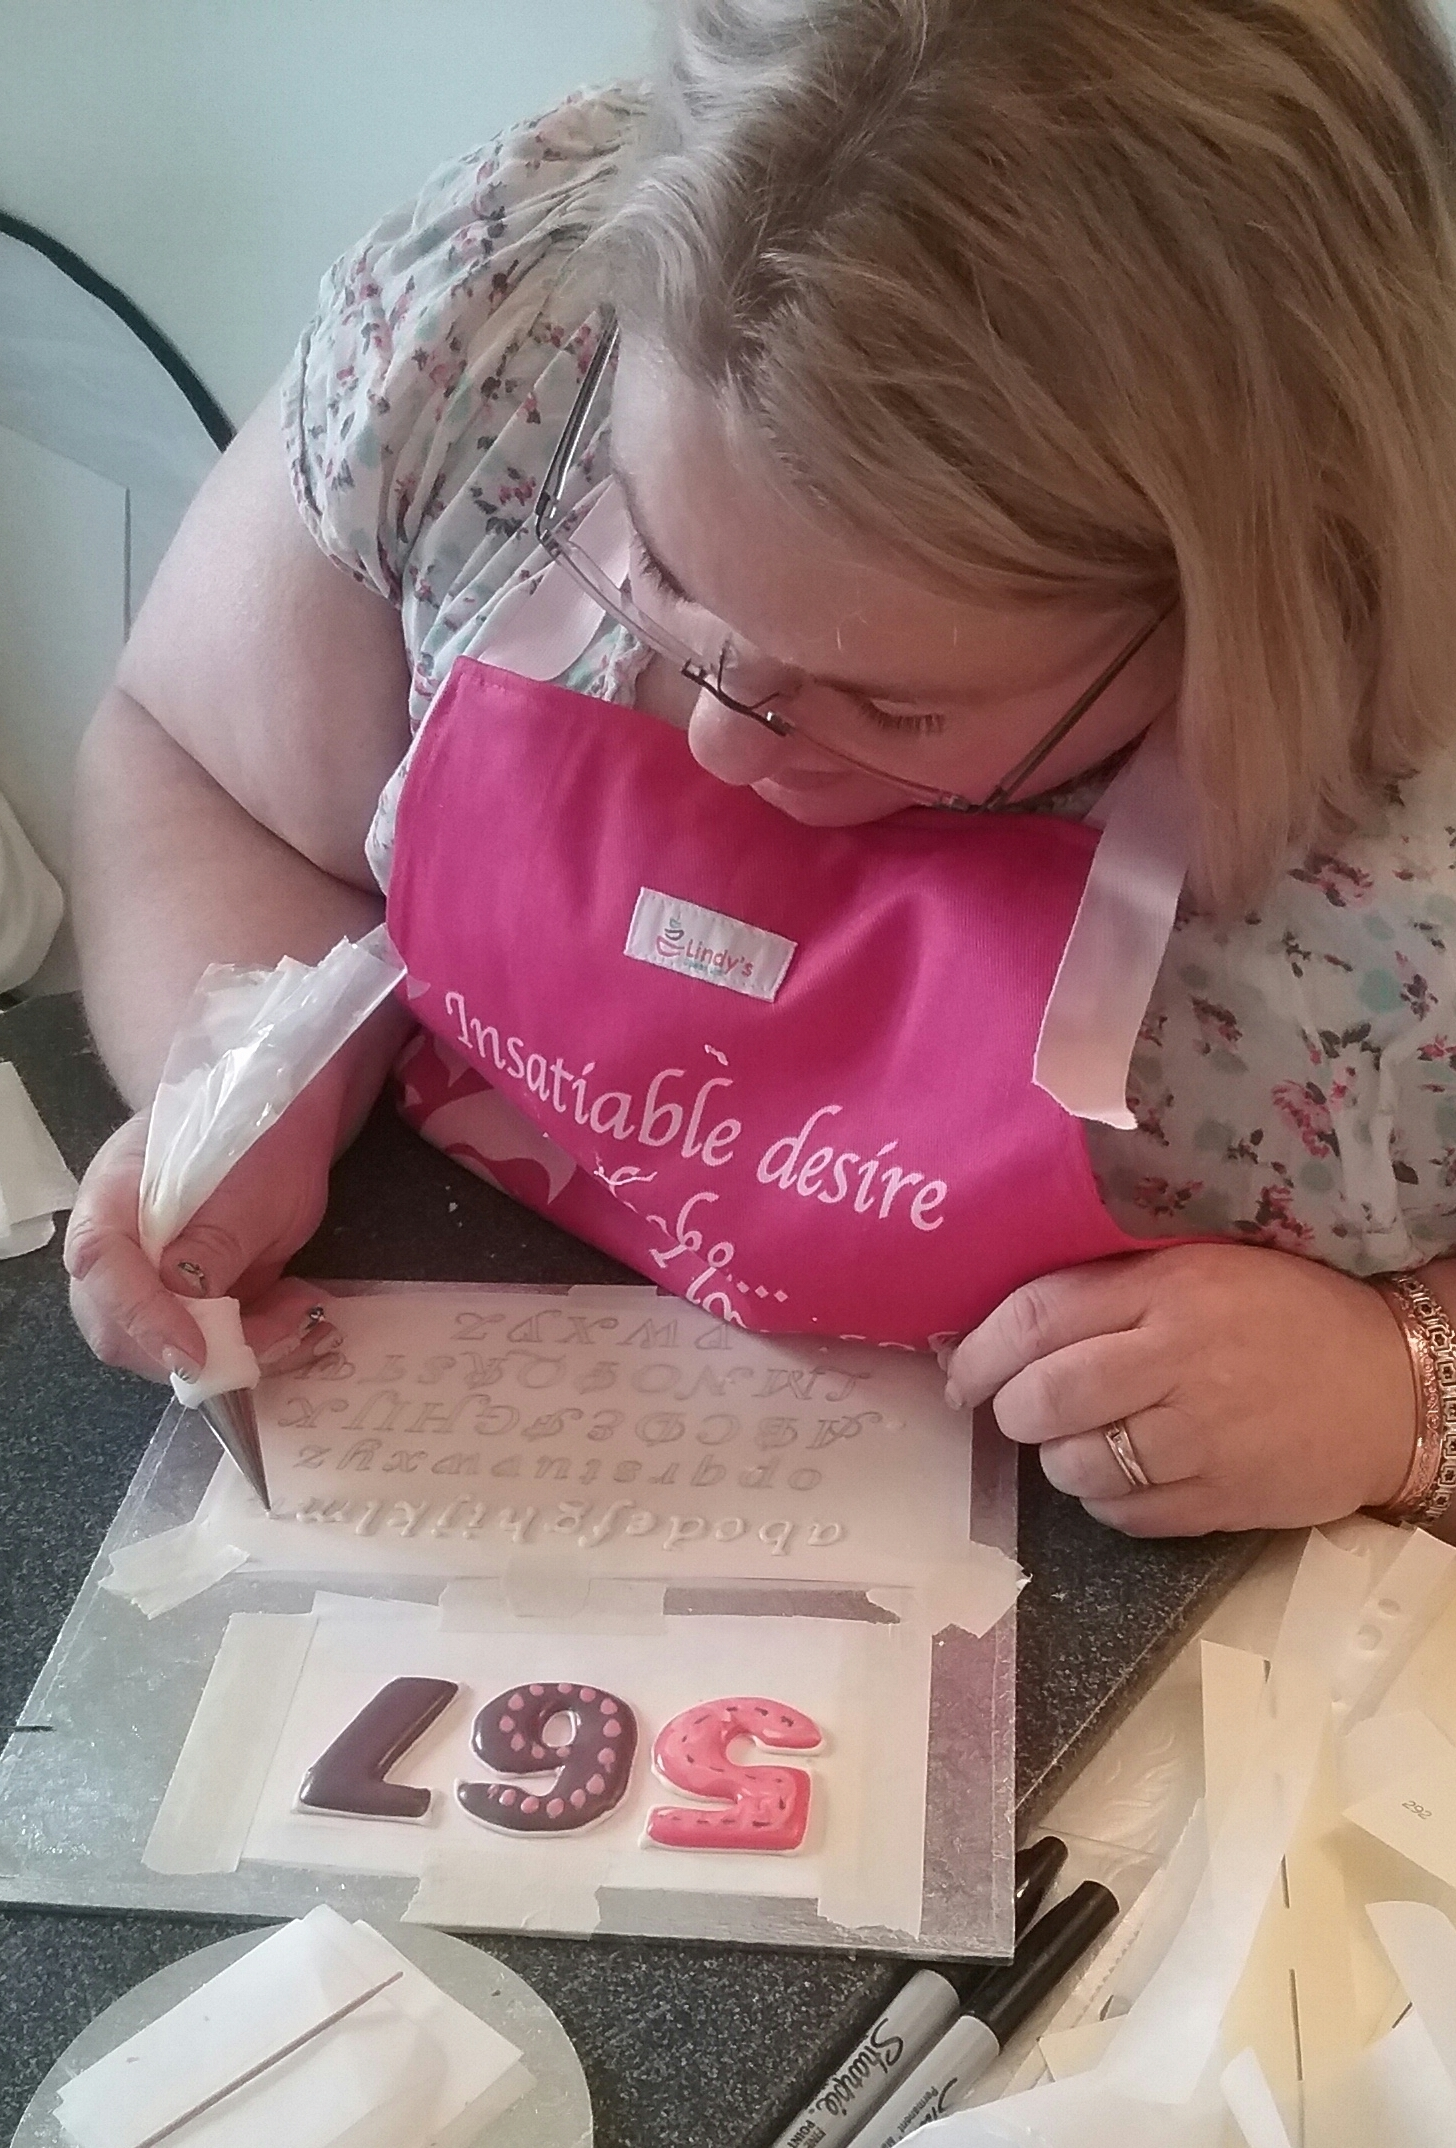 Royal icing and lettering skills 1-2-1 class with Lindy Smith